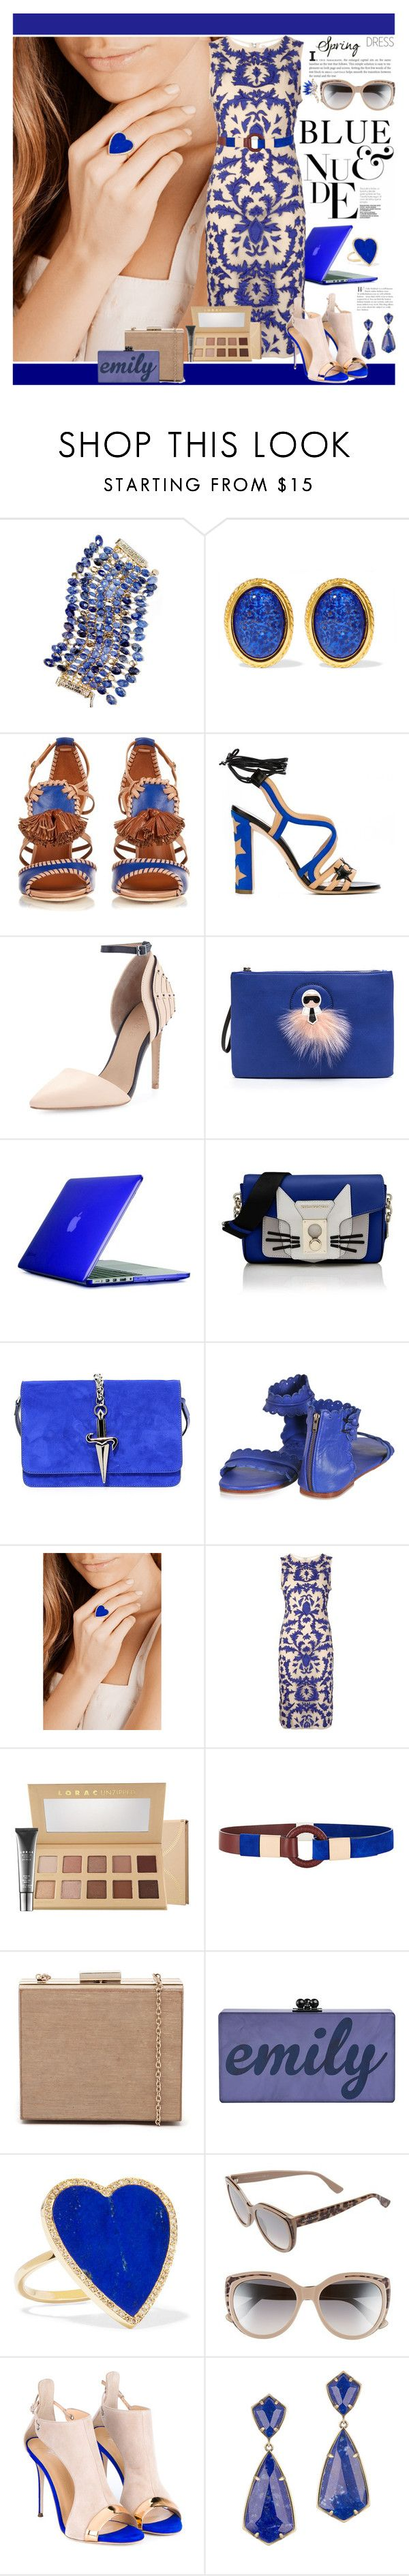 """""""Blue and Nude Spring Dress"""" by yours-styling-best-friend ❤ liked on Polyvore featuring Rosantica, Ben-Amun, Malone Souliers, Paula Cademartori, L.A.M.B., Speck, Karl Lagerfeld, Cesare Paciotti, Jennifer Meyer Jewelry and Alice + Olivia"""